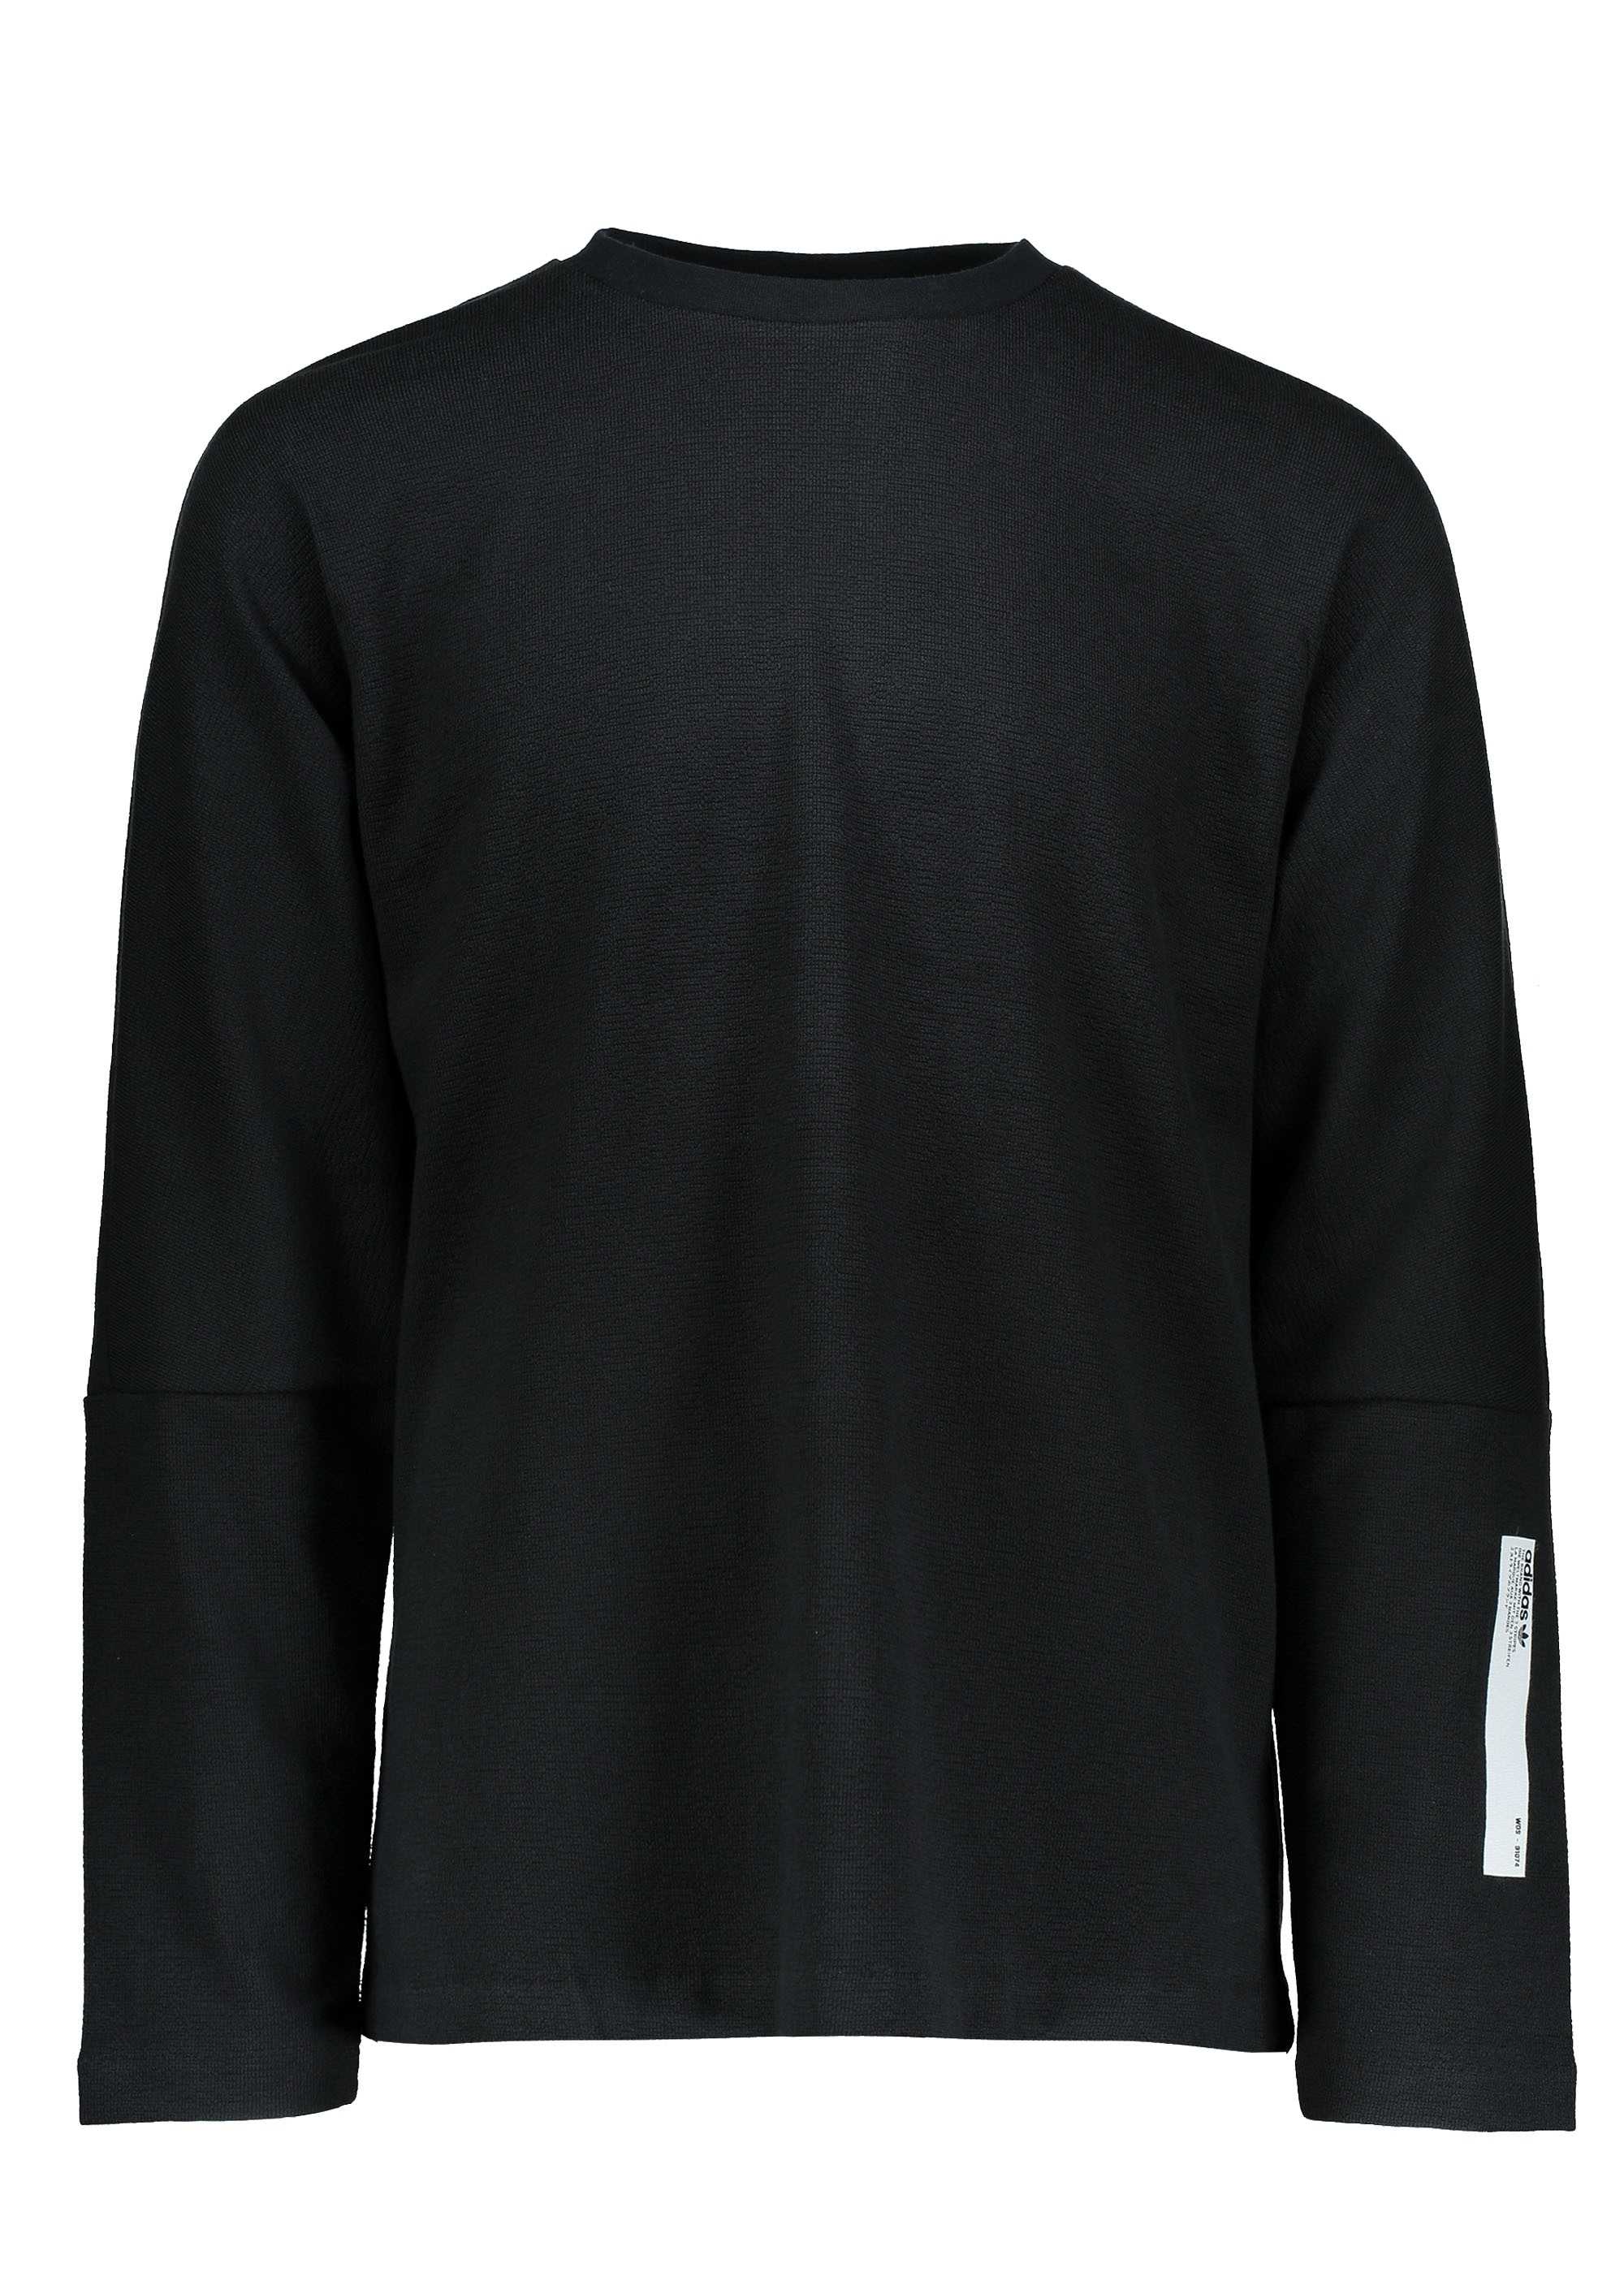 896e19c46 adidas Originals Apparel NMD Sweater - Black - Triads Mens from ...